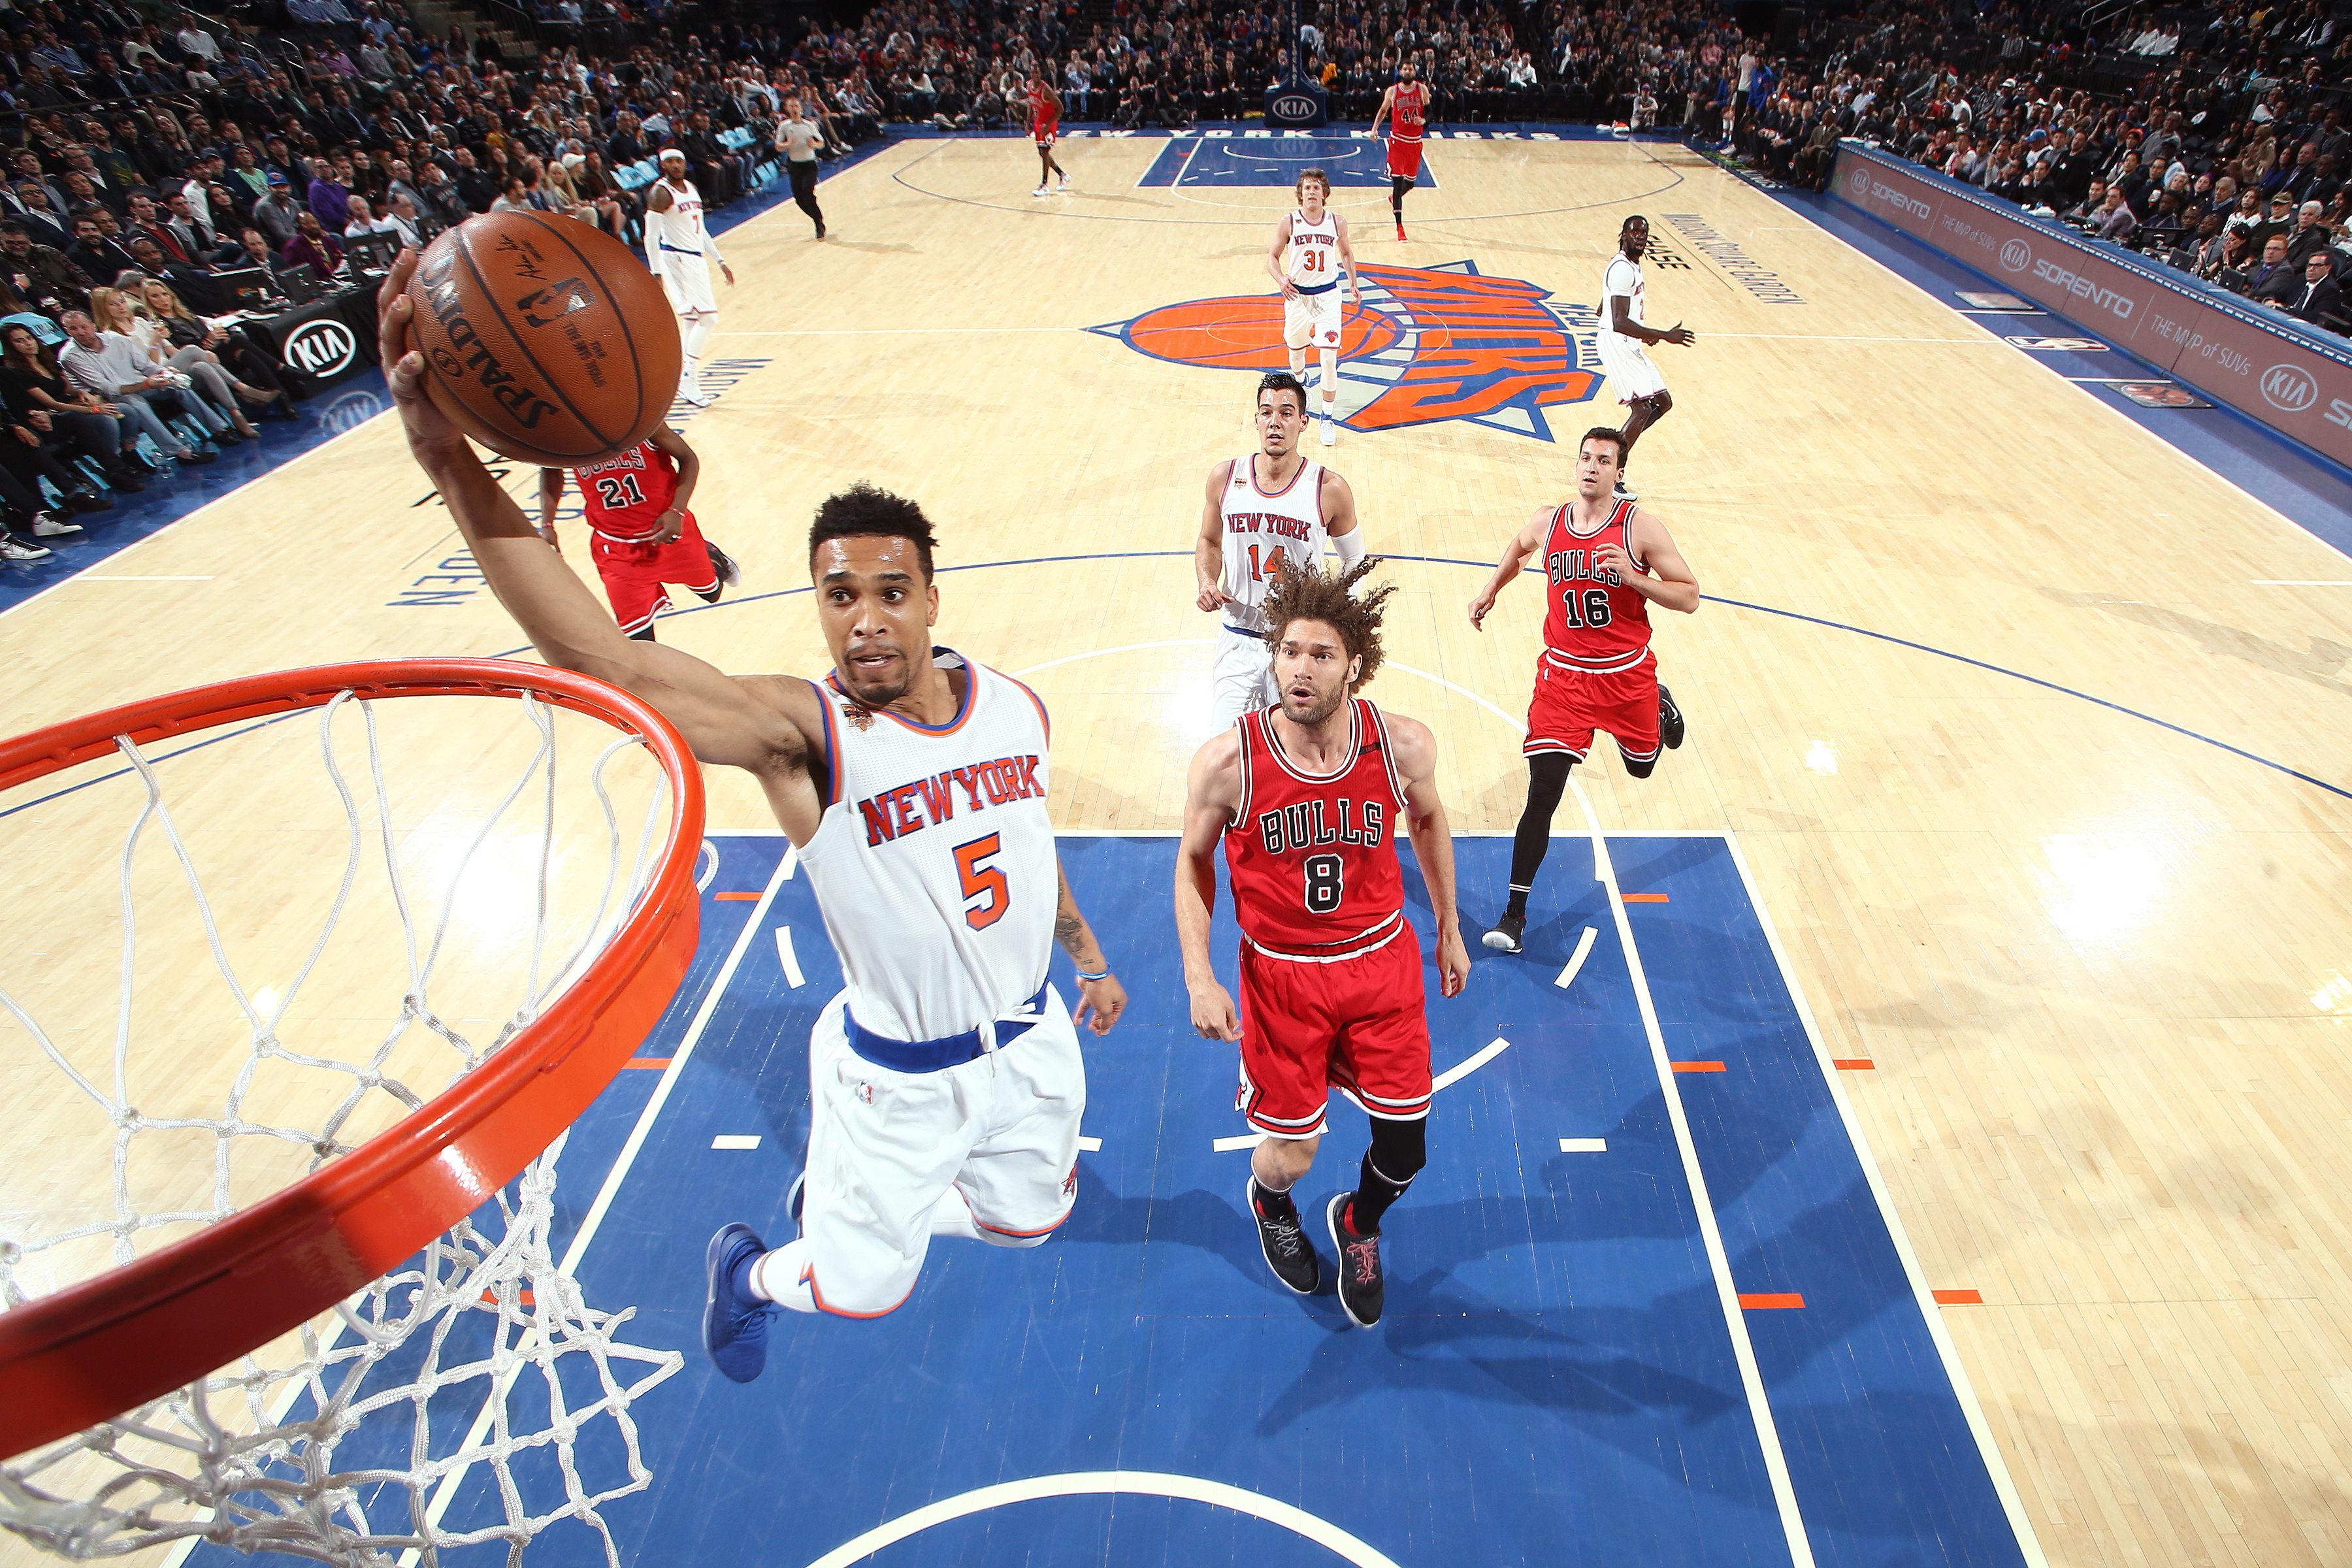 Bulls overcome travel obstacles to defeat Knicks